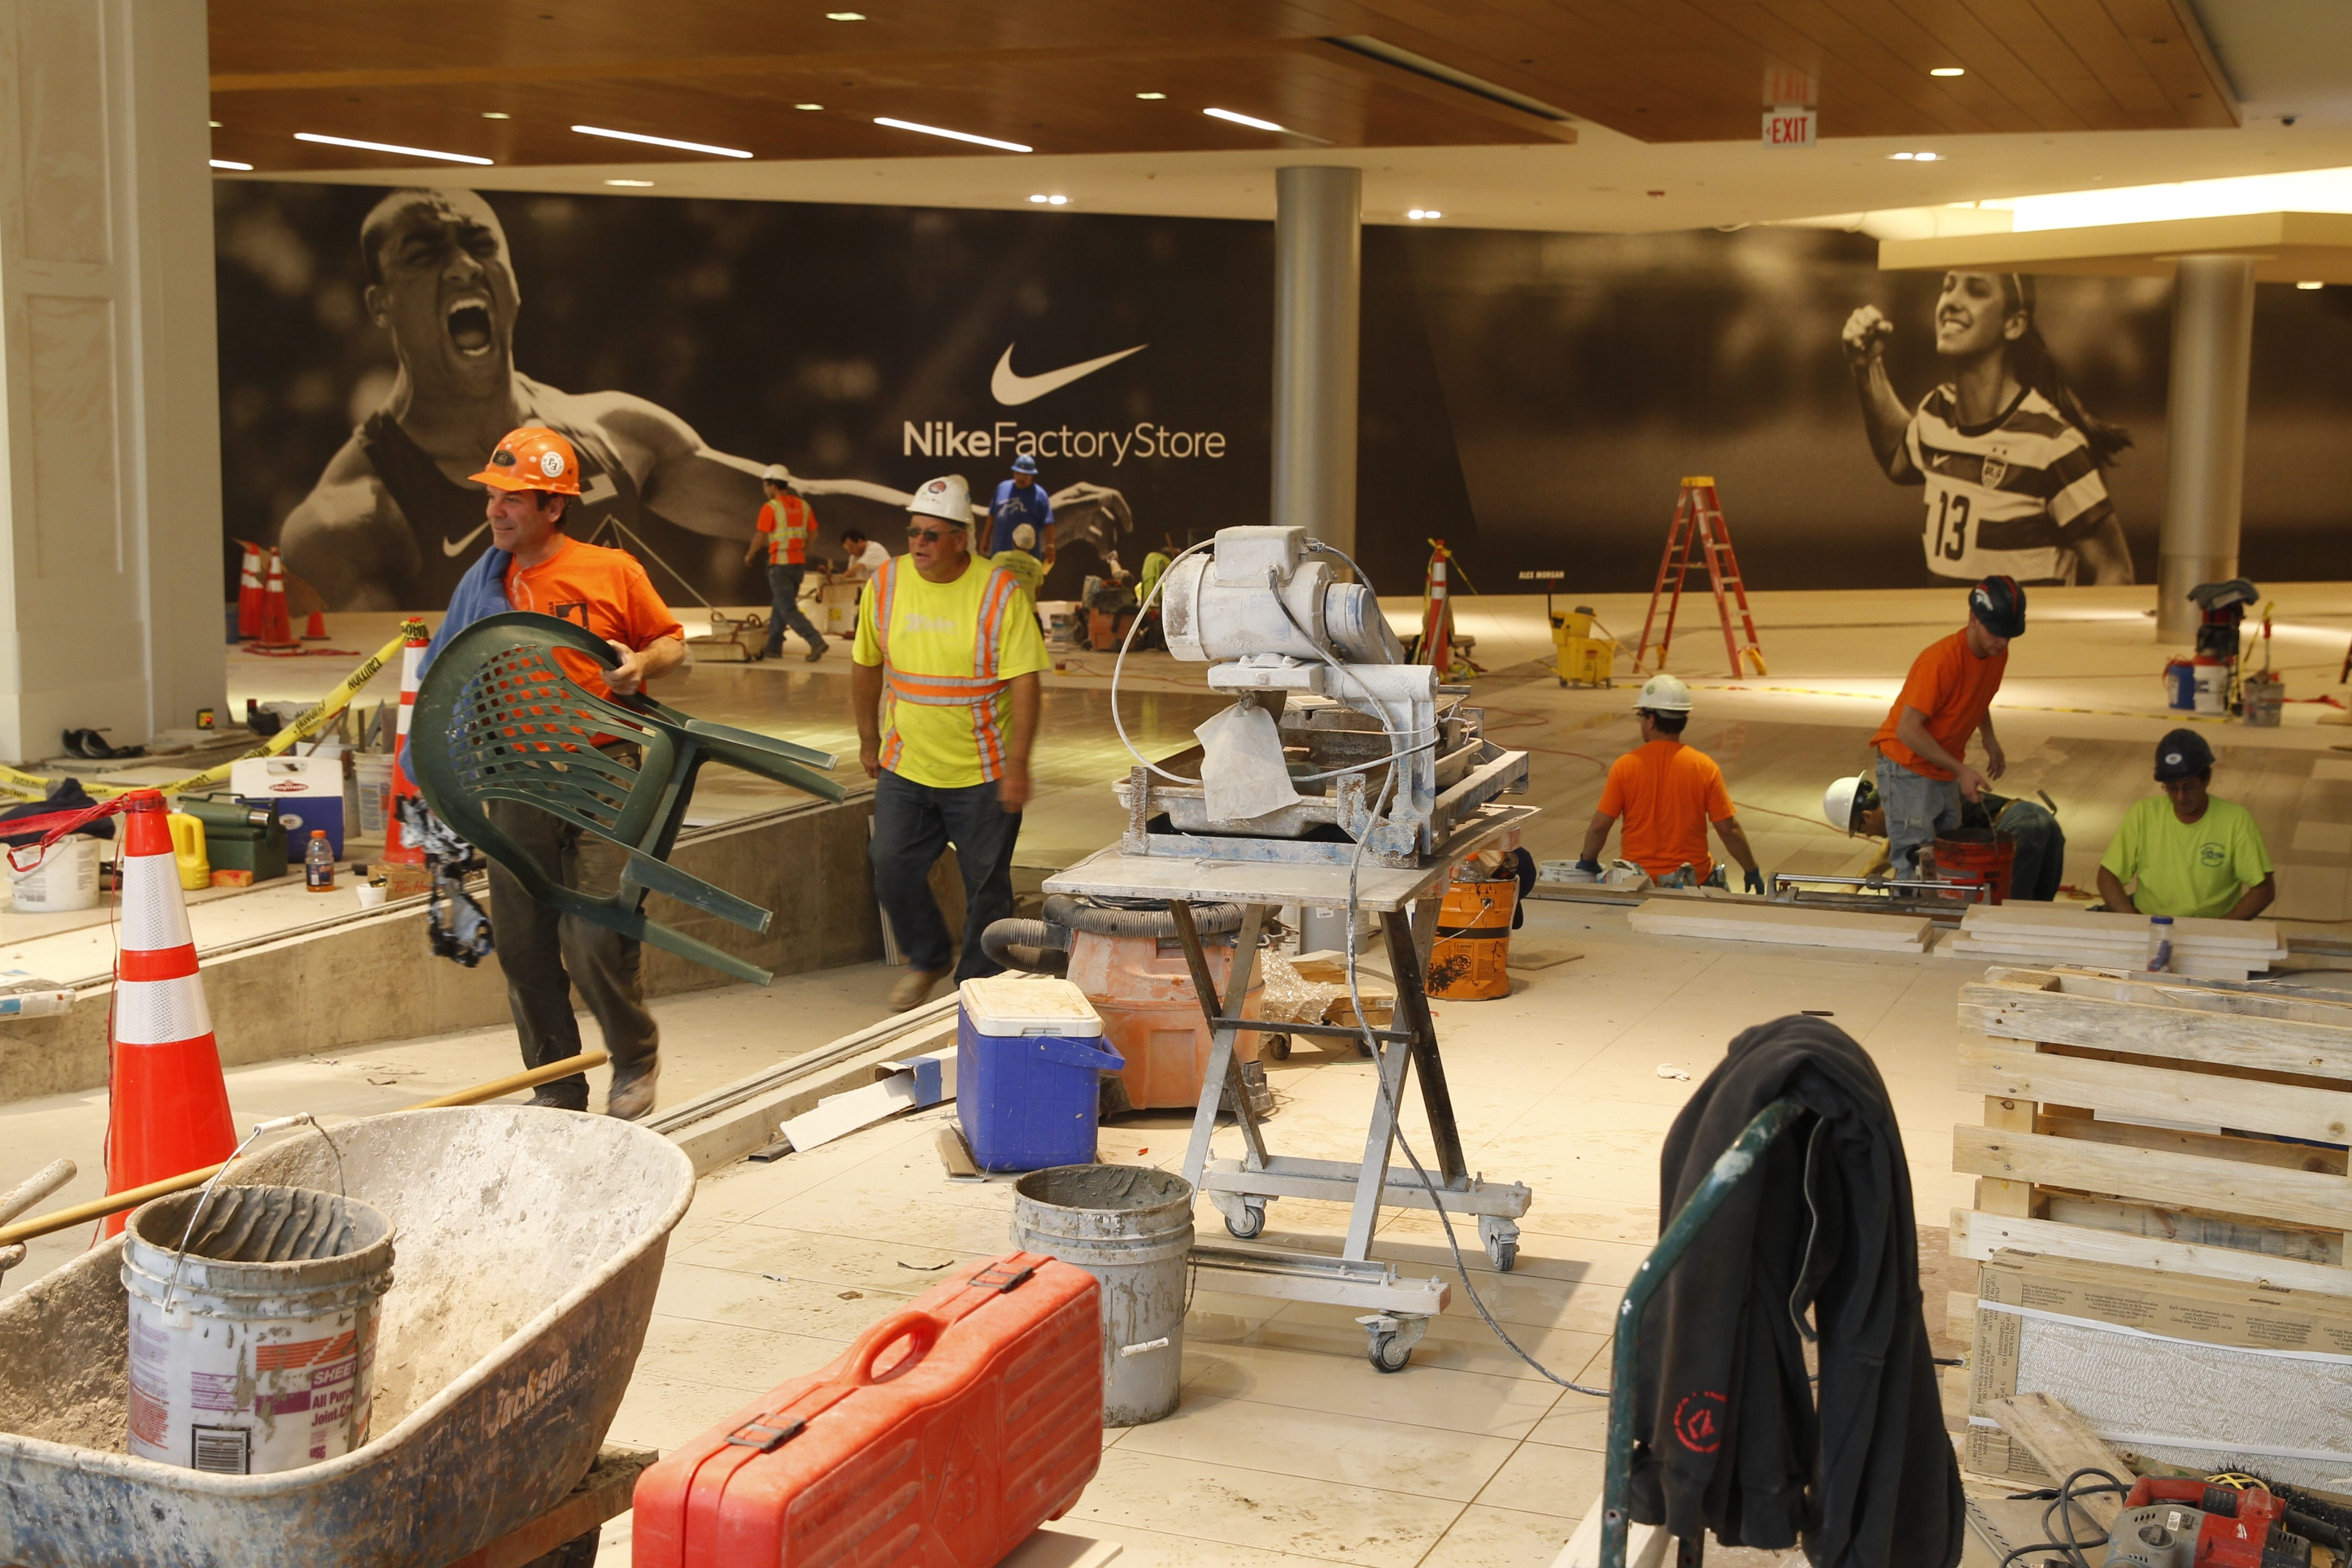 Work on flooring continued Wednesday in the new wing of the $71 million expansion at the Fashion Outlets in Niagara Falls in preparation for today's opening of more than 30 new stores. (John Hickey/Buffalo News)